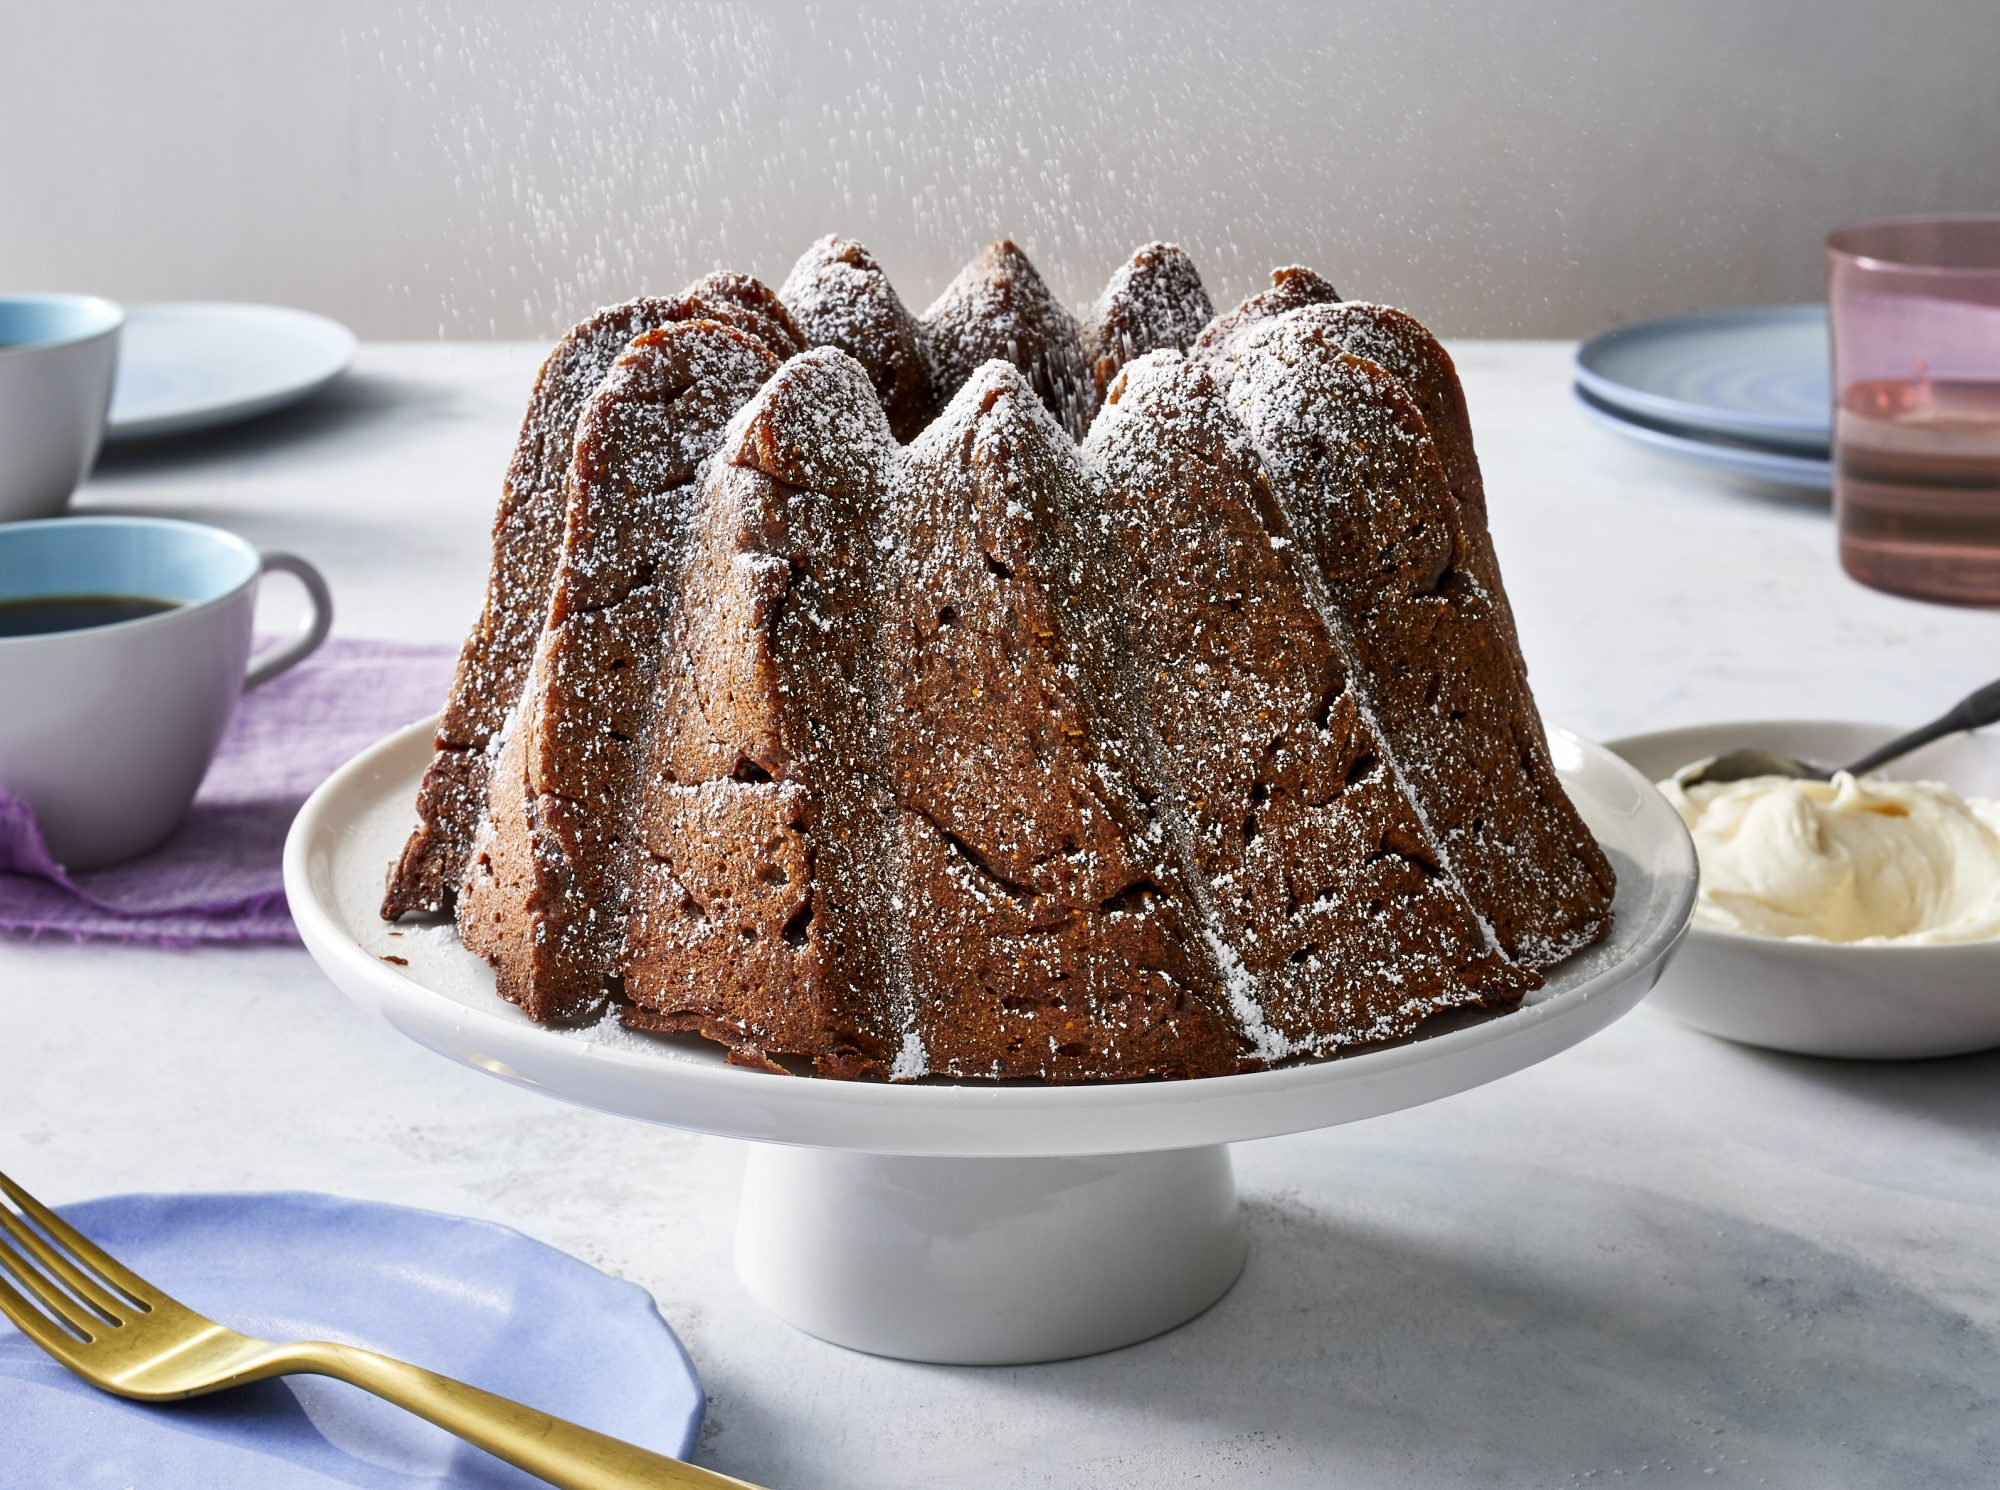 Brown-Butter Figgy Pudding